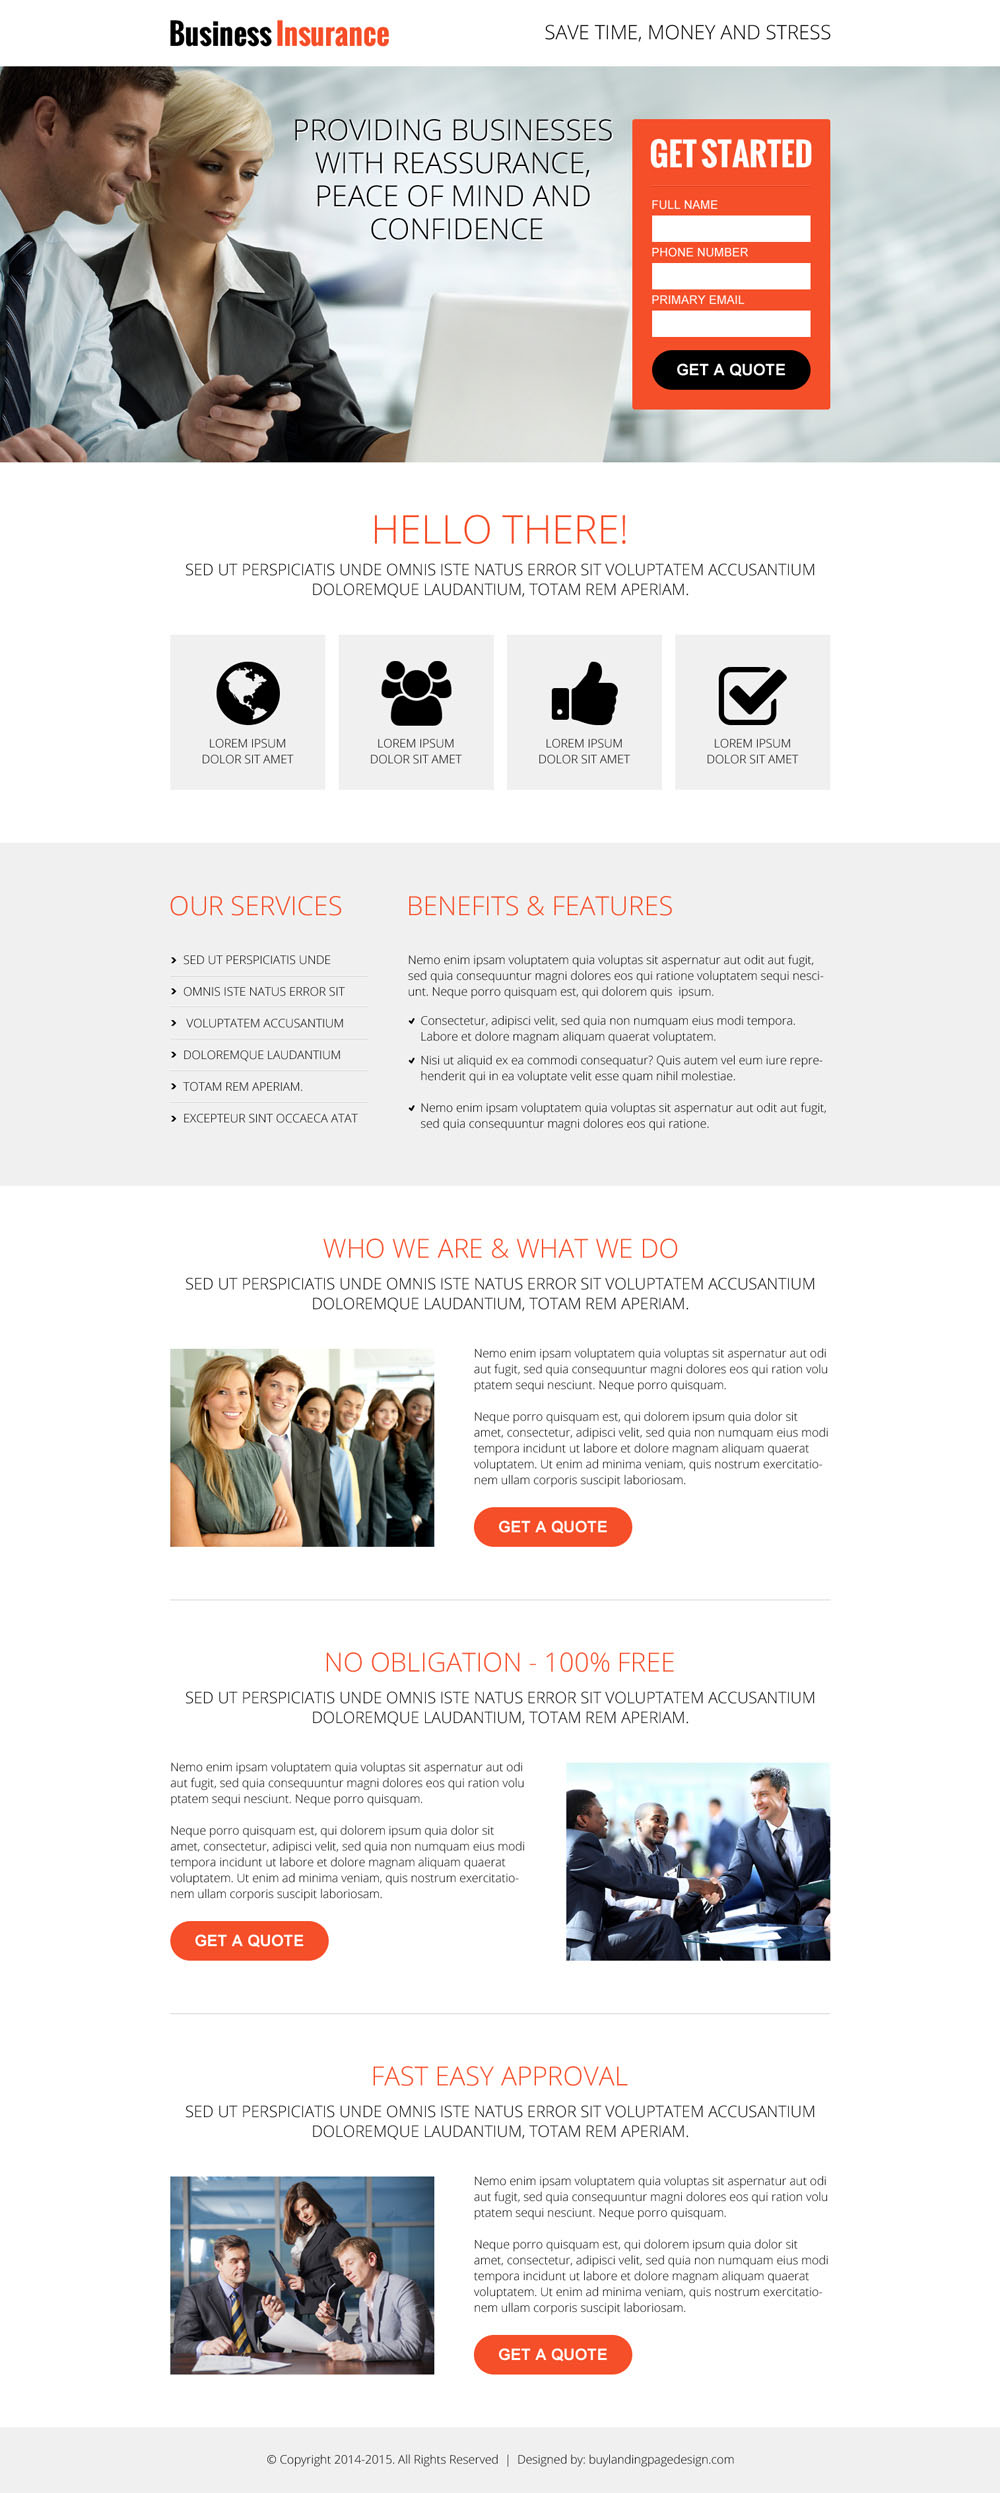 business-insurance-lead-capture-conversion-centered-landing-page-design-template-015